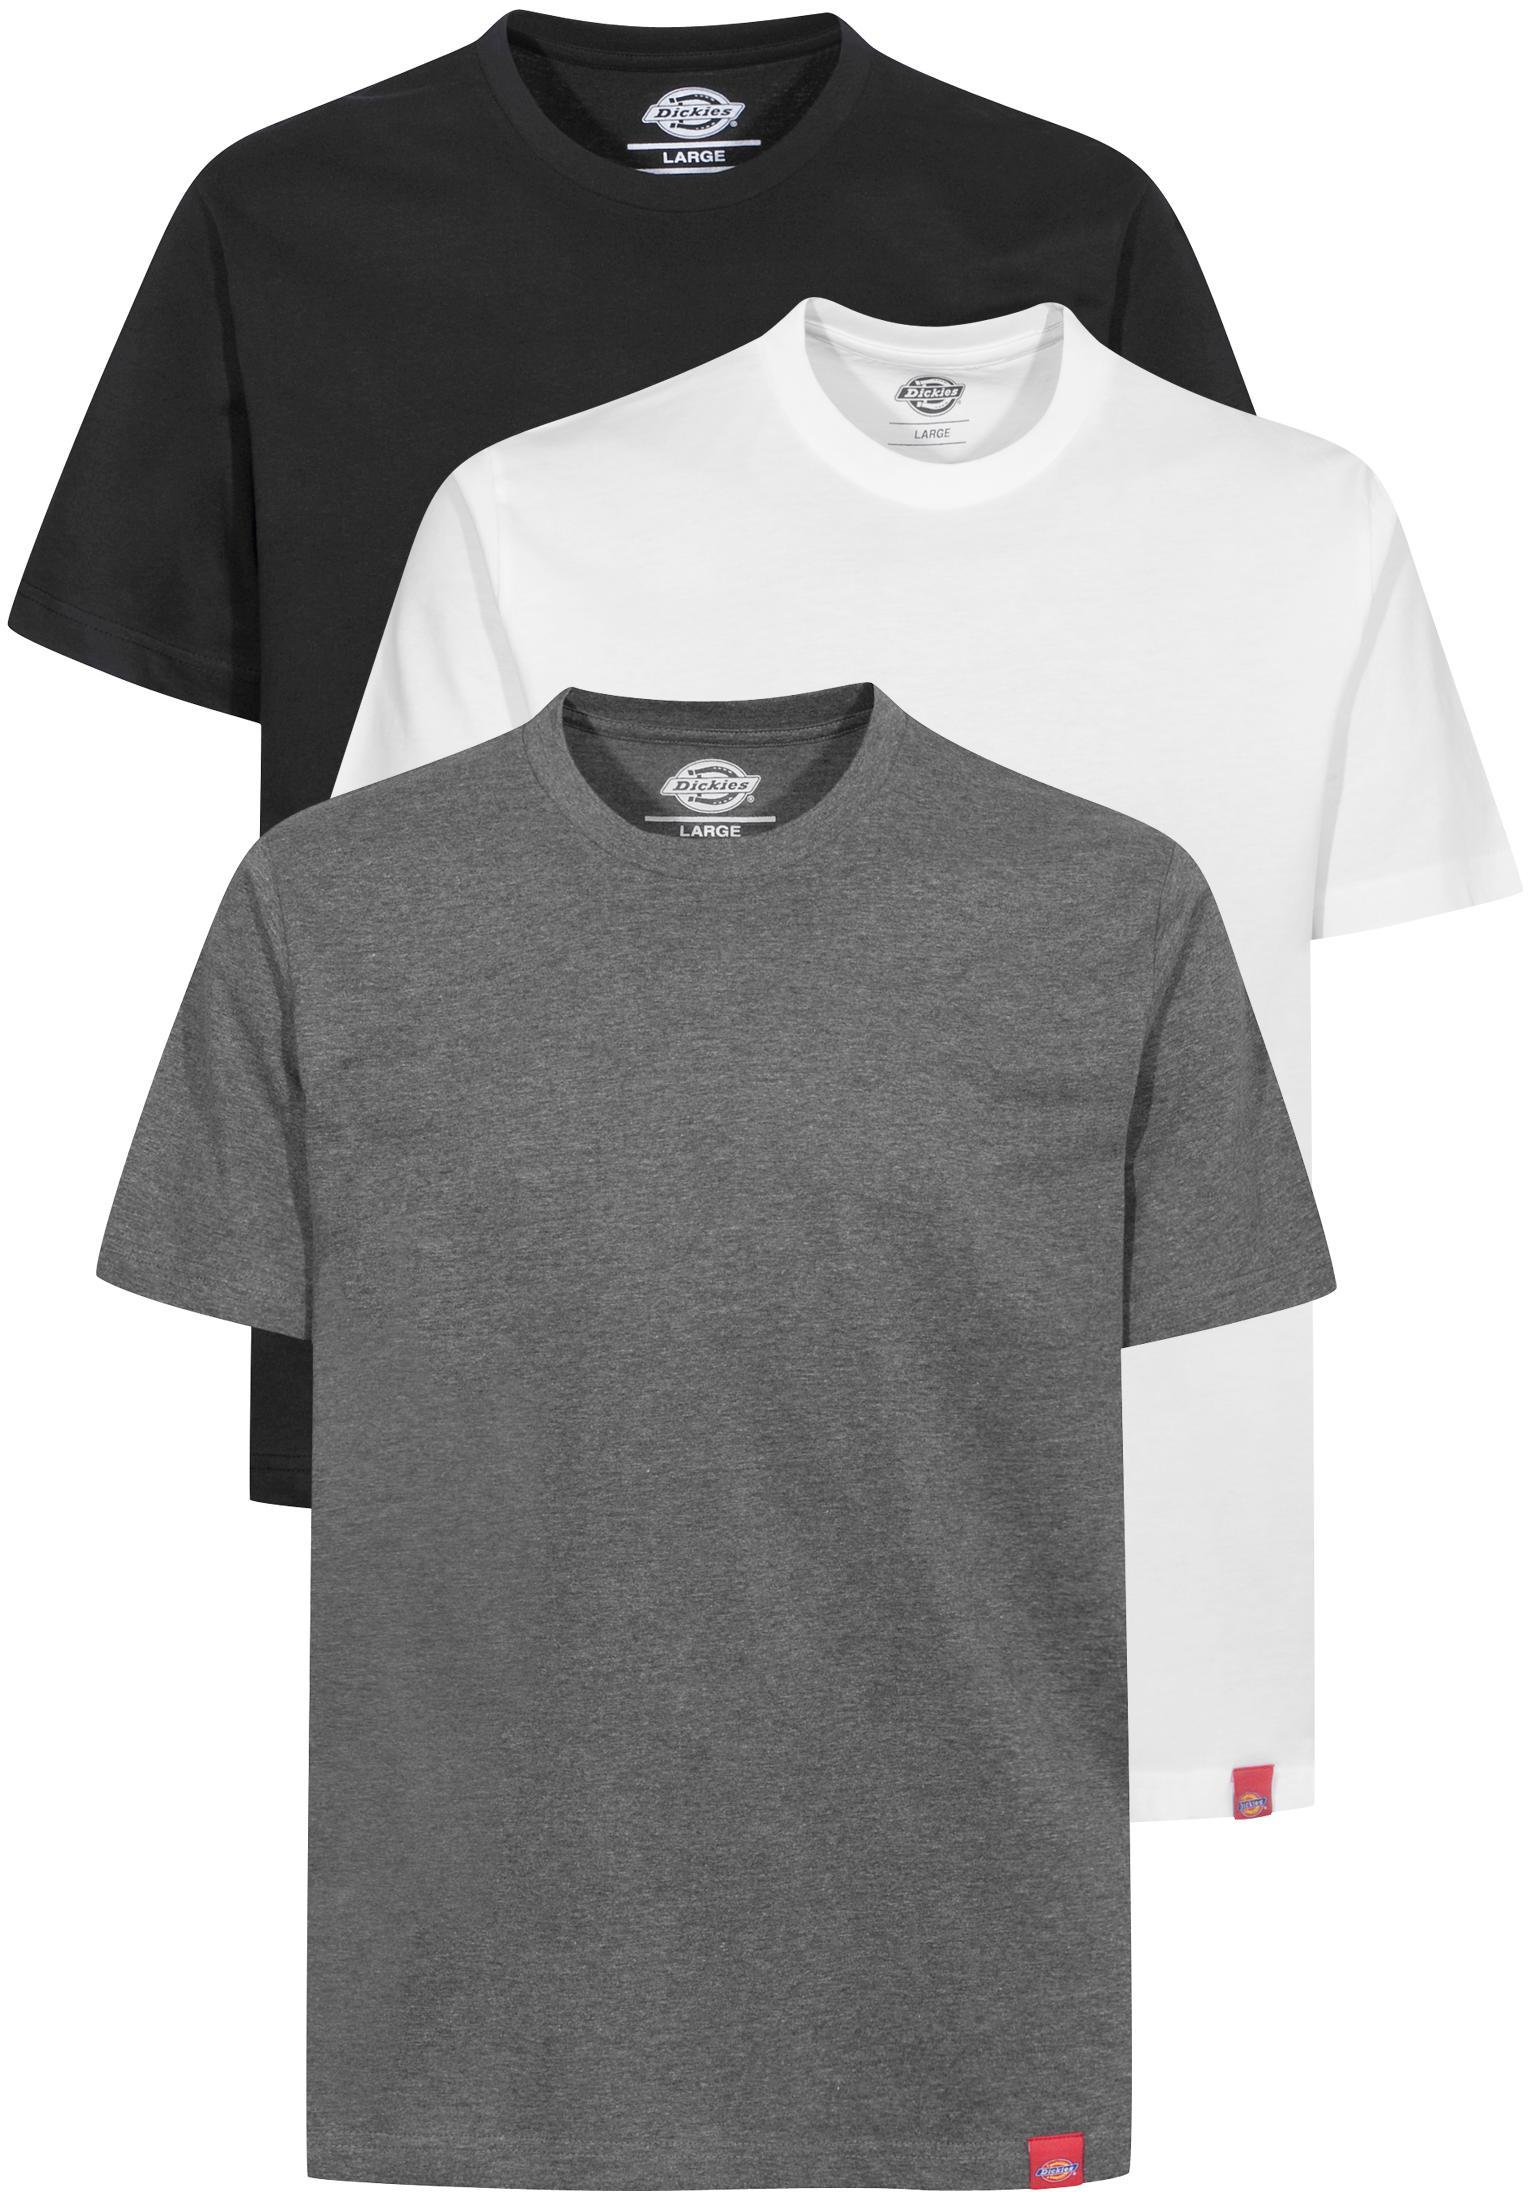 Multi Color T Shirt 3er Pack Dickies T Shirts in black grey white